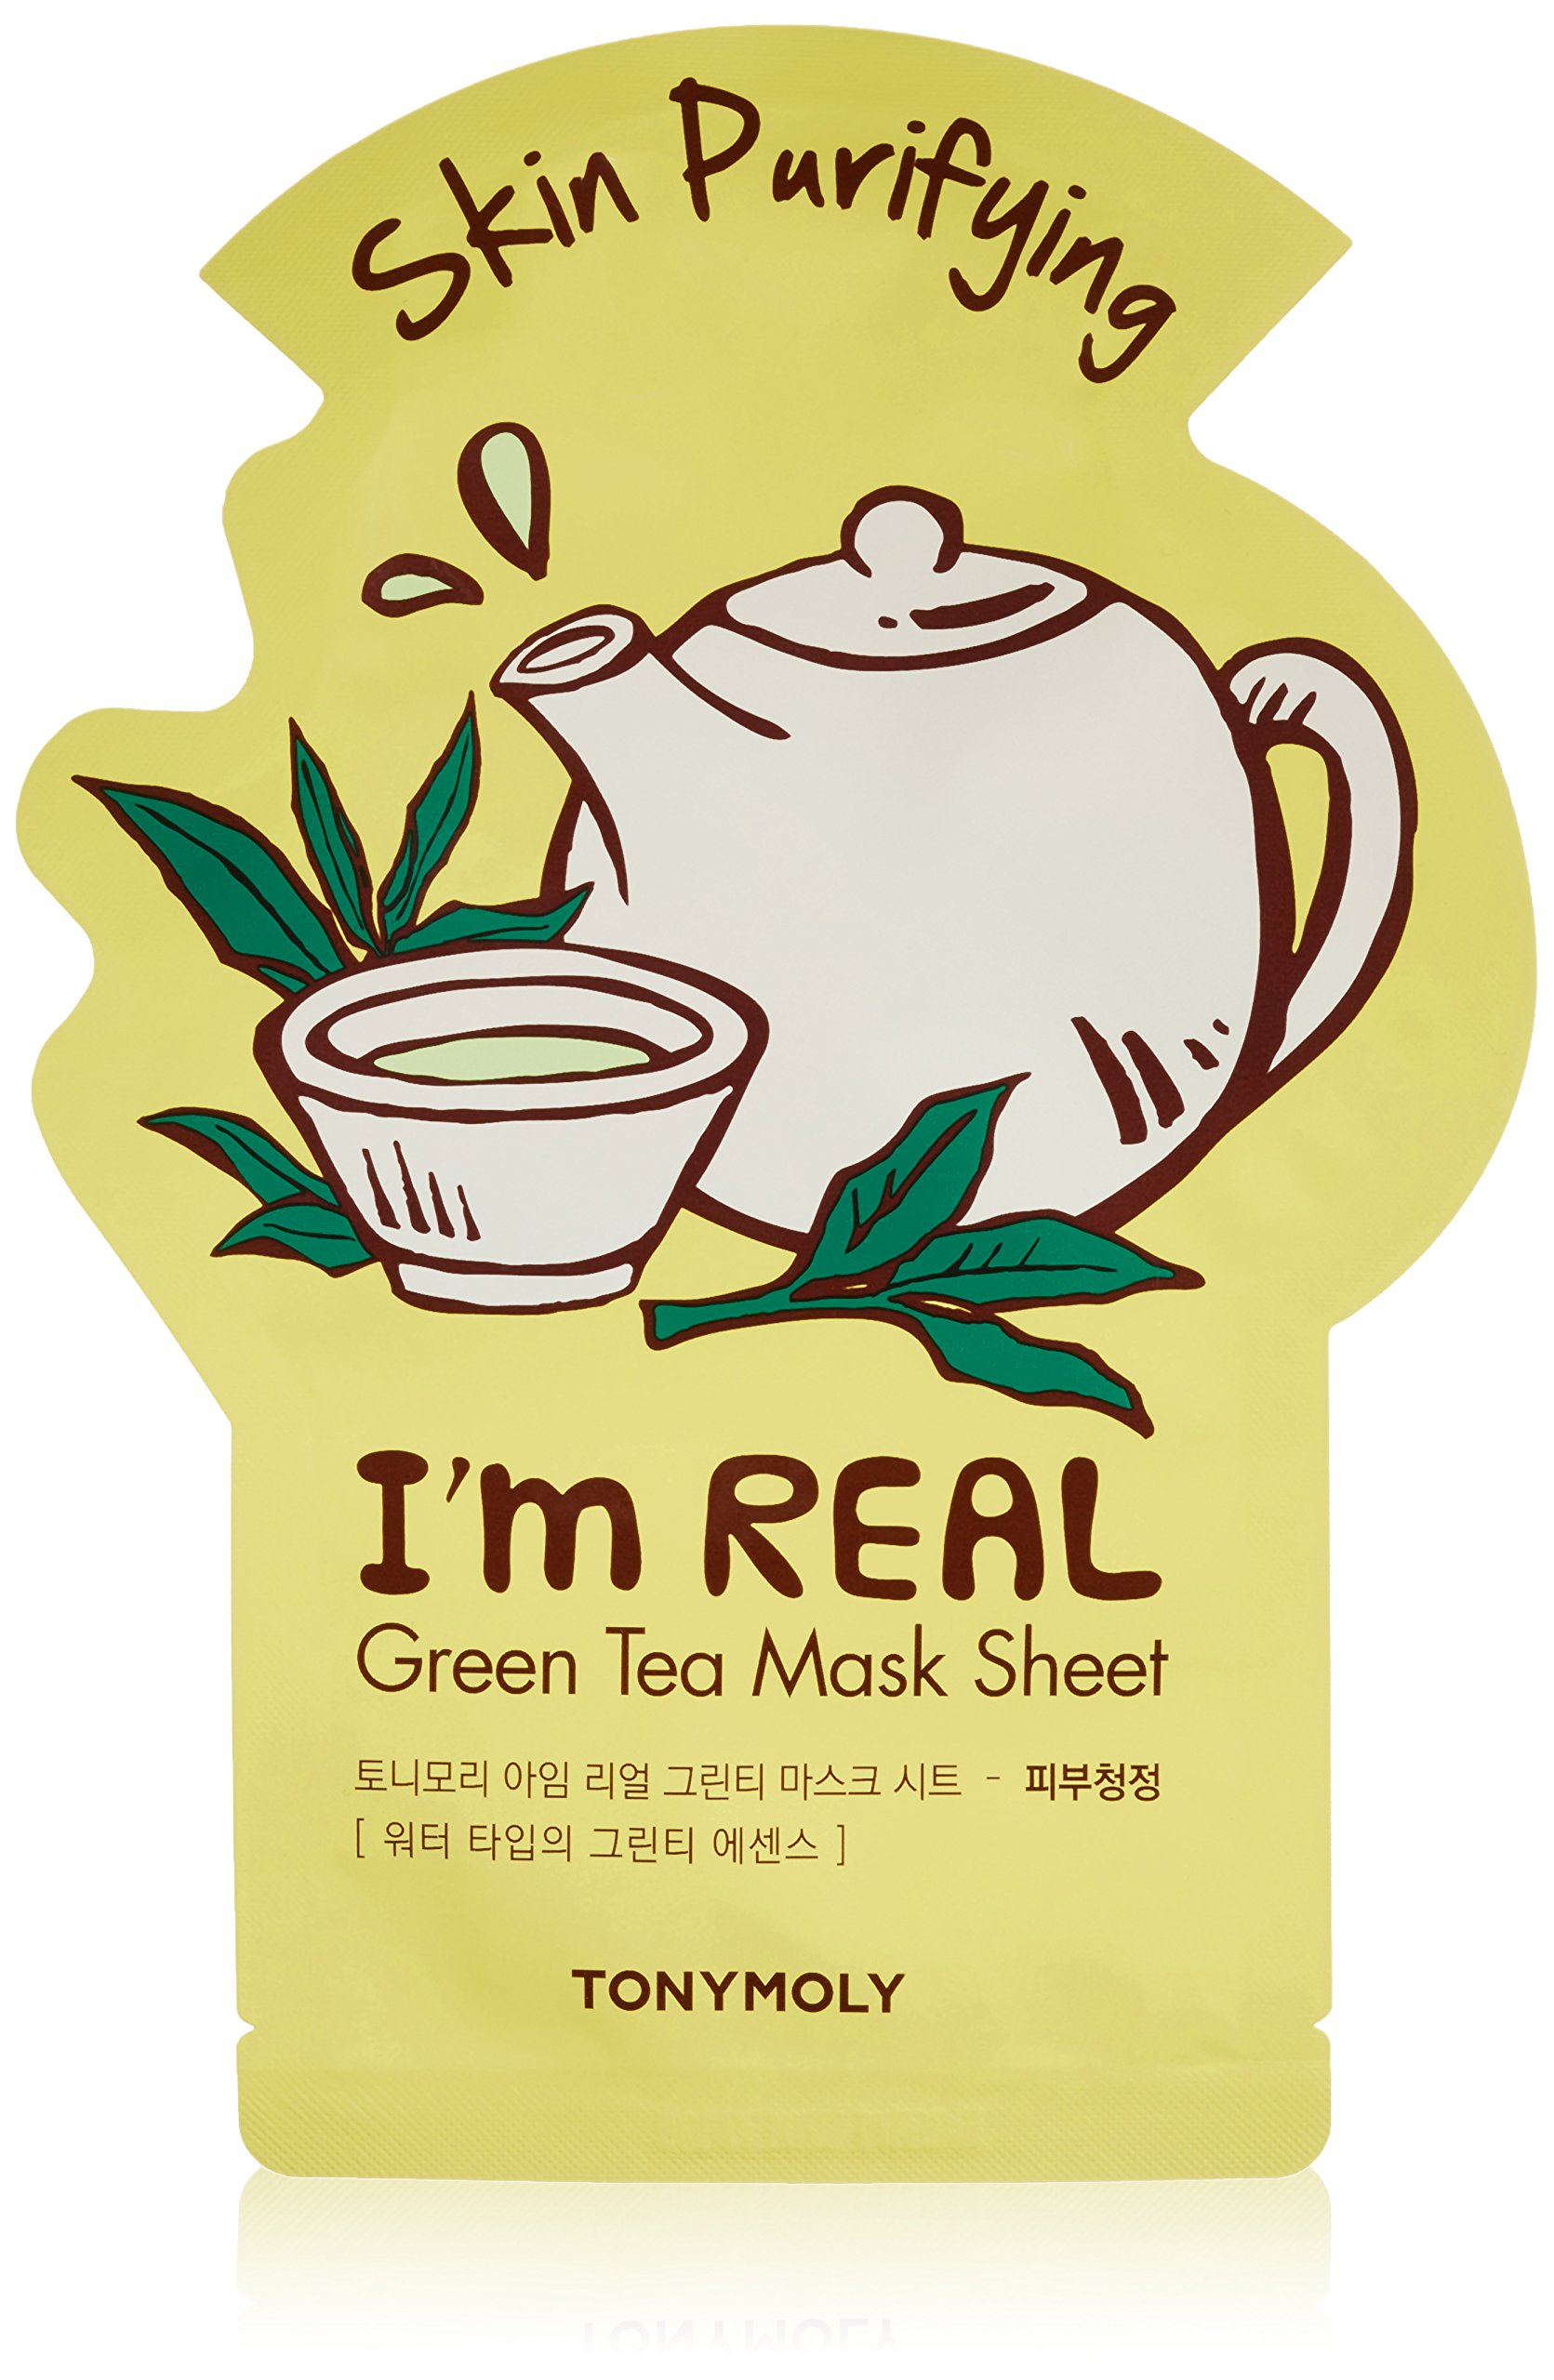 TONYMOLY - TONYMOLY I'm Real Green Skin Purifying Tee Mask